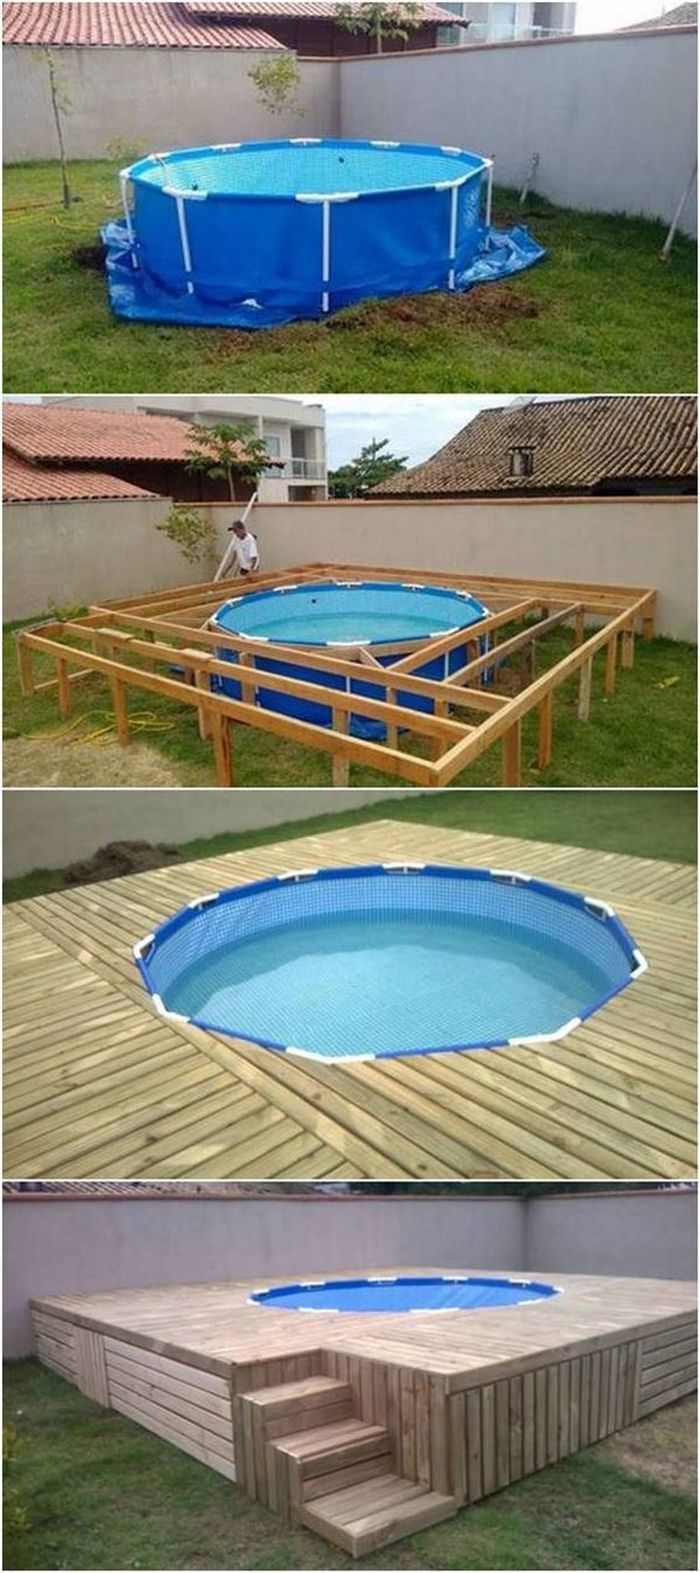 Build an inexpensive above ground swimming pool diy for - How to make your own swimming pool heater ...